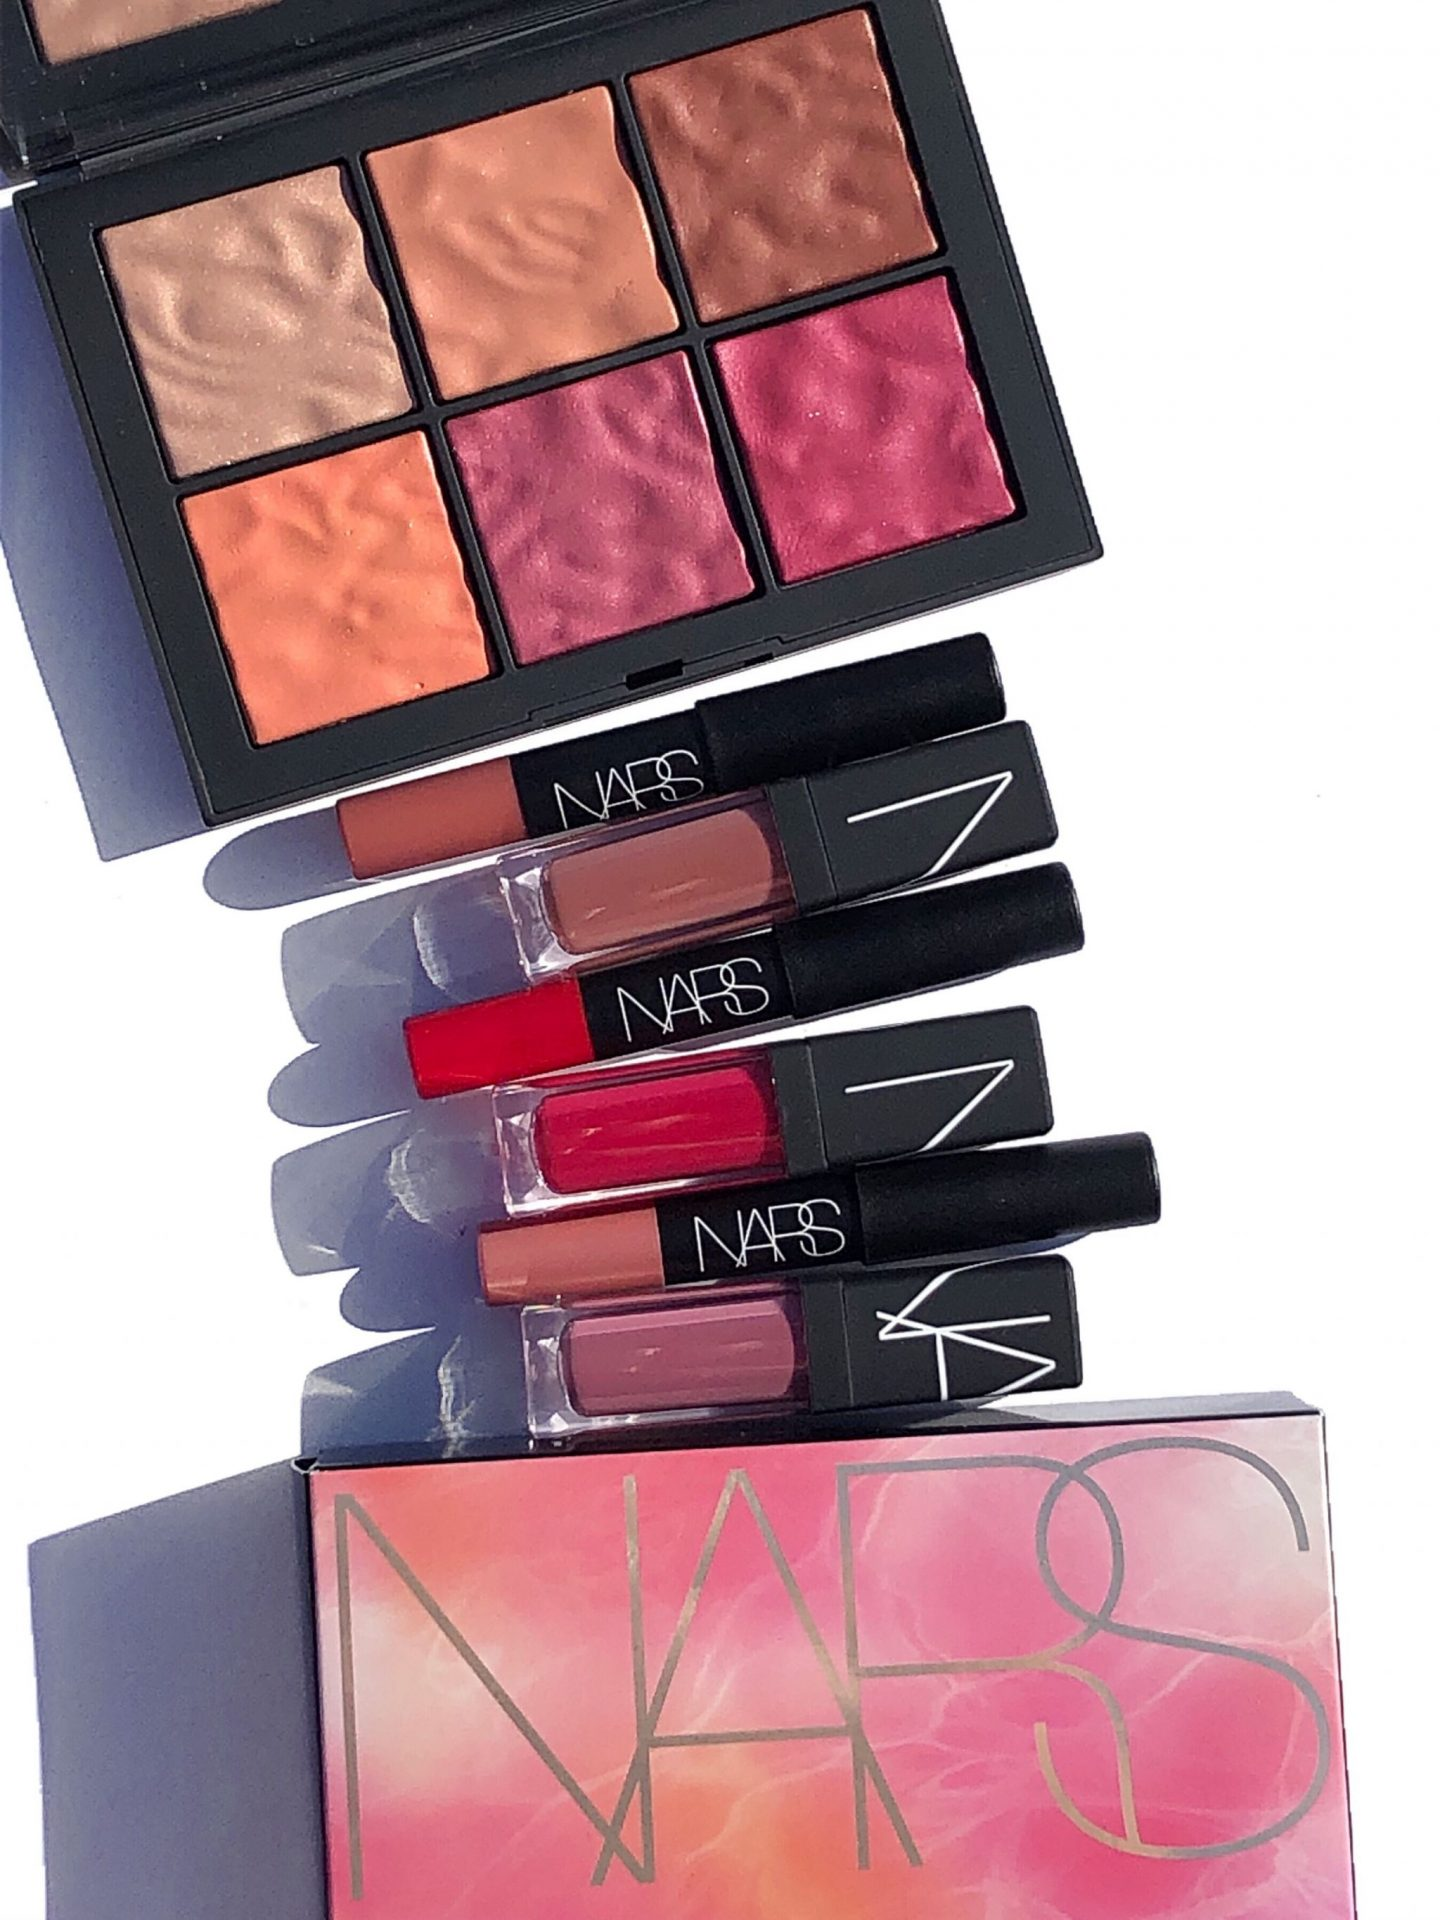 NARS Exposed Collection Cheek Palette & Explicit Lip Duos Swatches